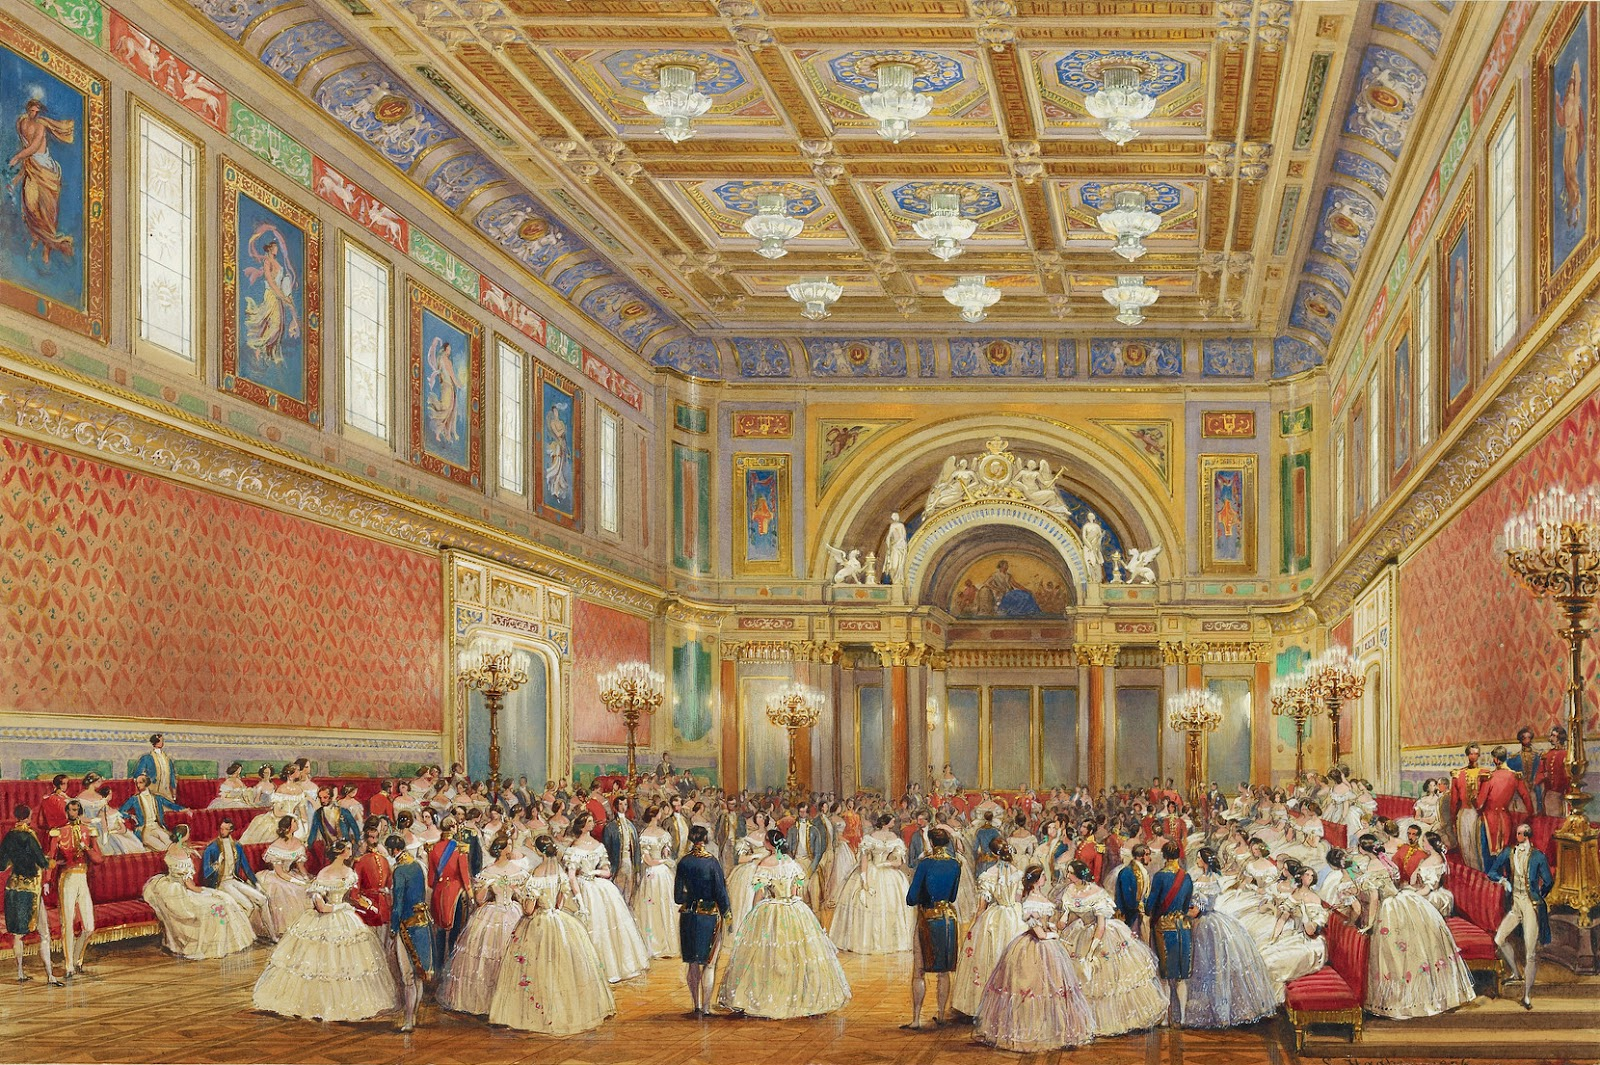 The Ballroom, Buckingham Palace, 17 June 1856, by Louis Haghe